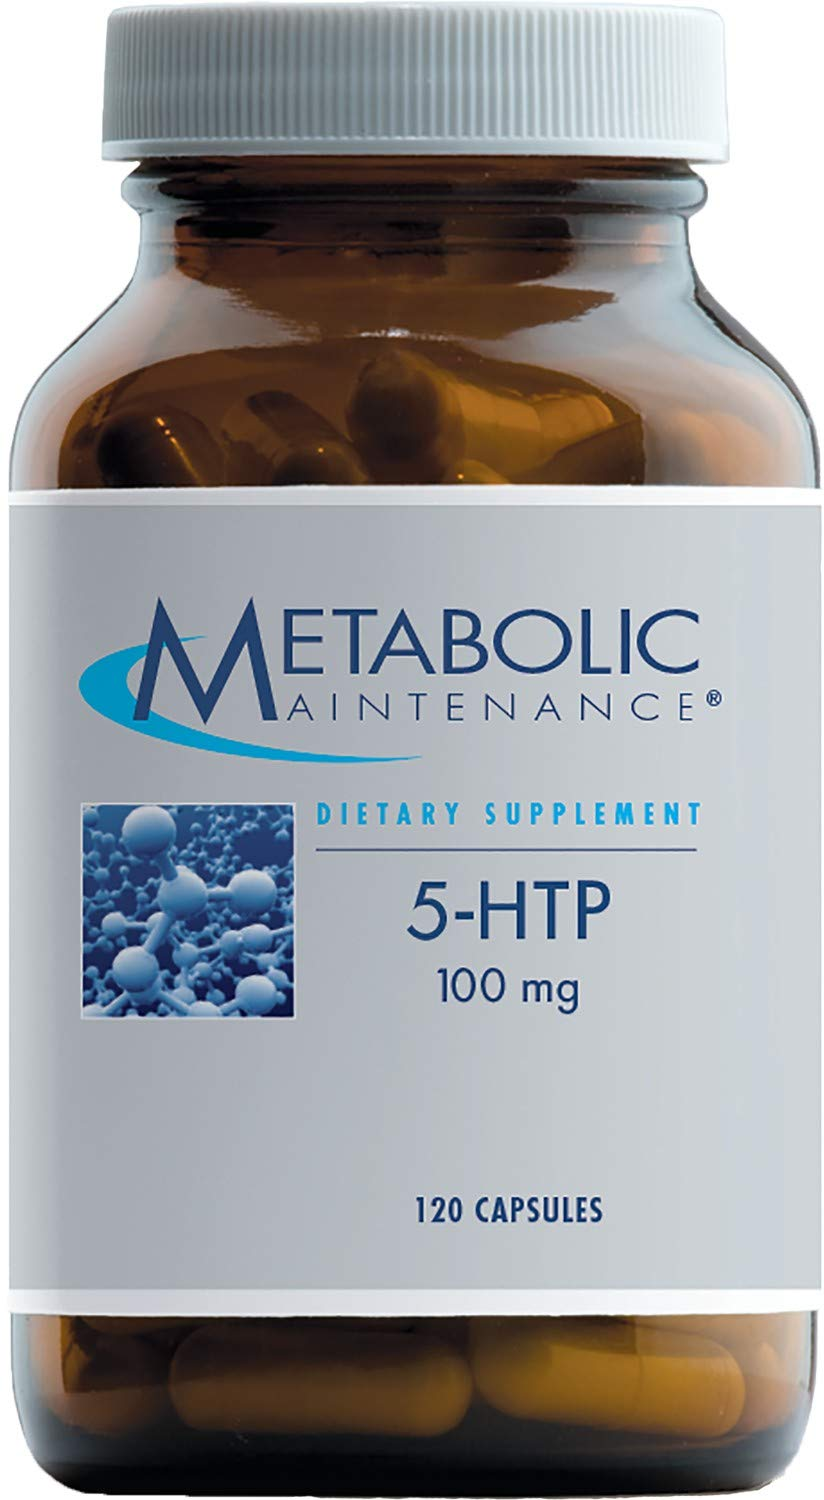 Metabolic Maintenance 5-HTP - 100 Milligrams with Vitamin B6 (P-5-P) for Mood + Sleep Support (120 Capsules)